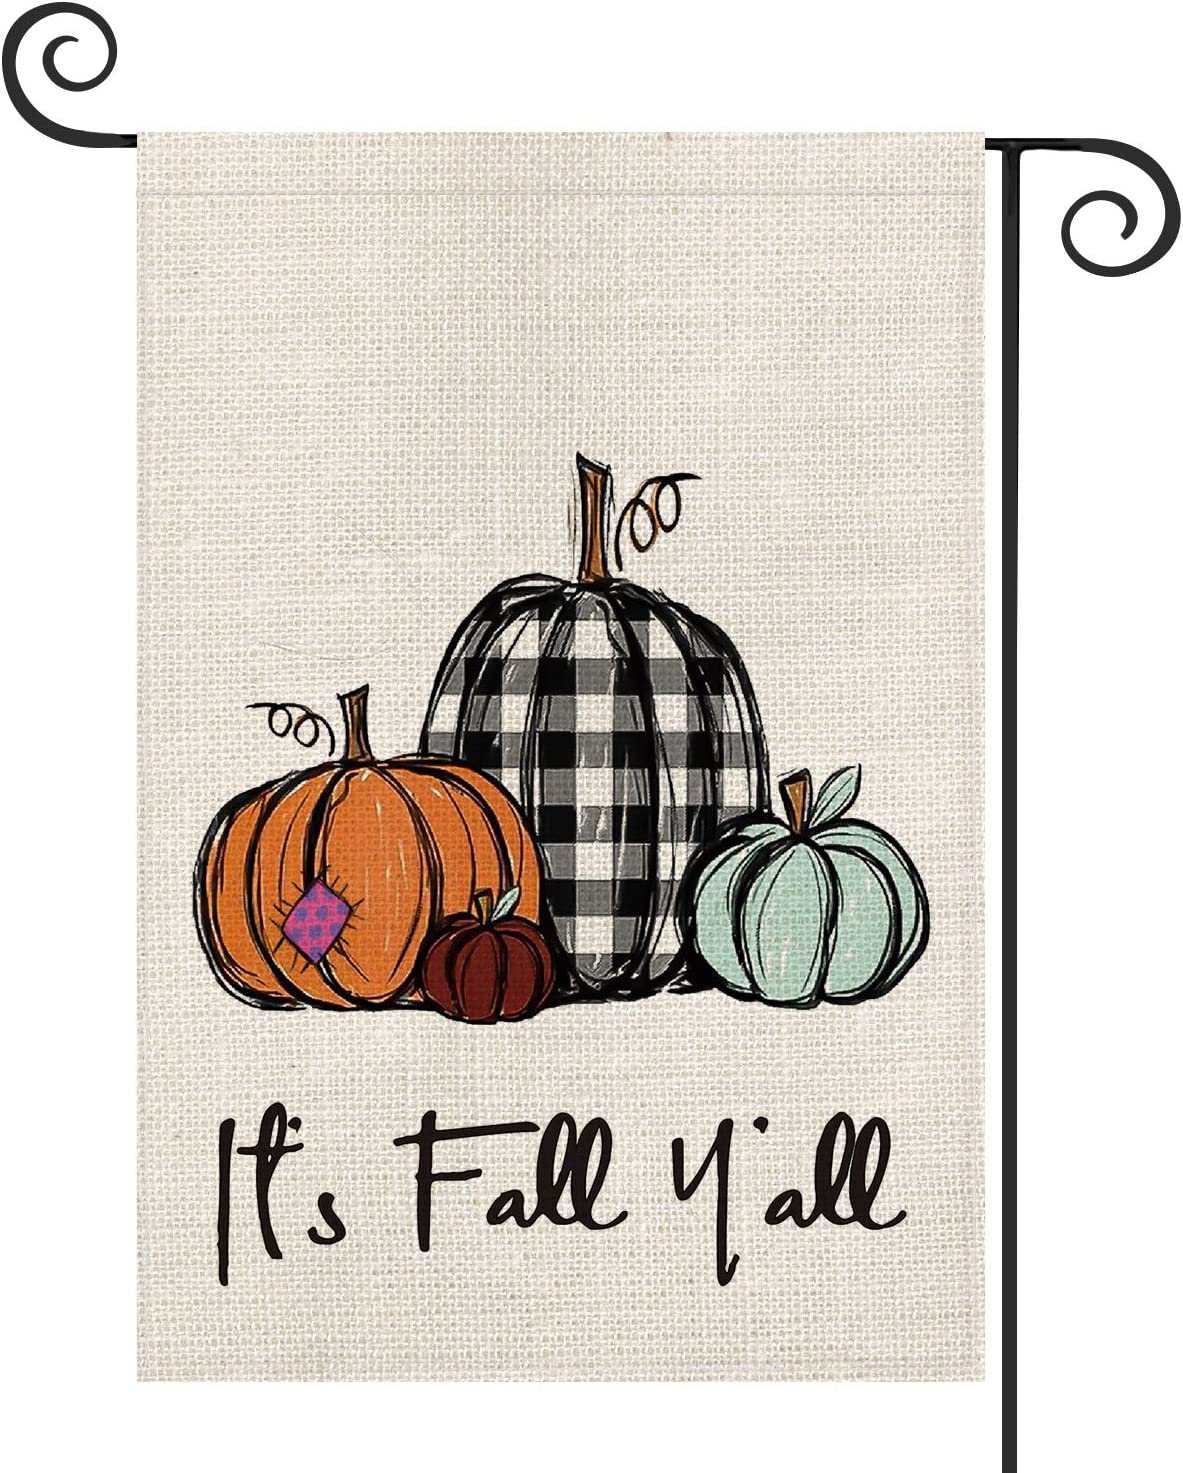 AVOIN It's Fall Y'all Buffalo Plaid Pumpkin Polka Dot Patch Garden Flag Vertical Double Sized, Autumn Thanksgiving Holiday Yard Outdoor Decoration 12.5 x 18 Inch